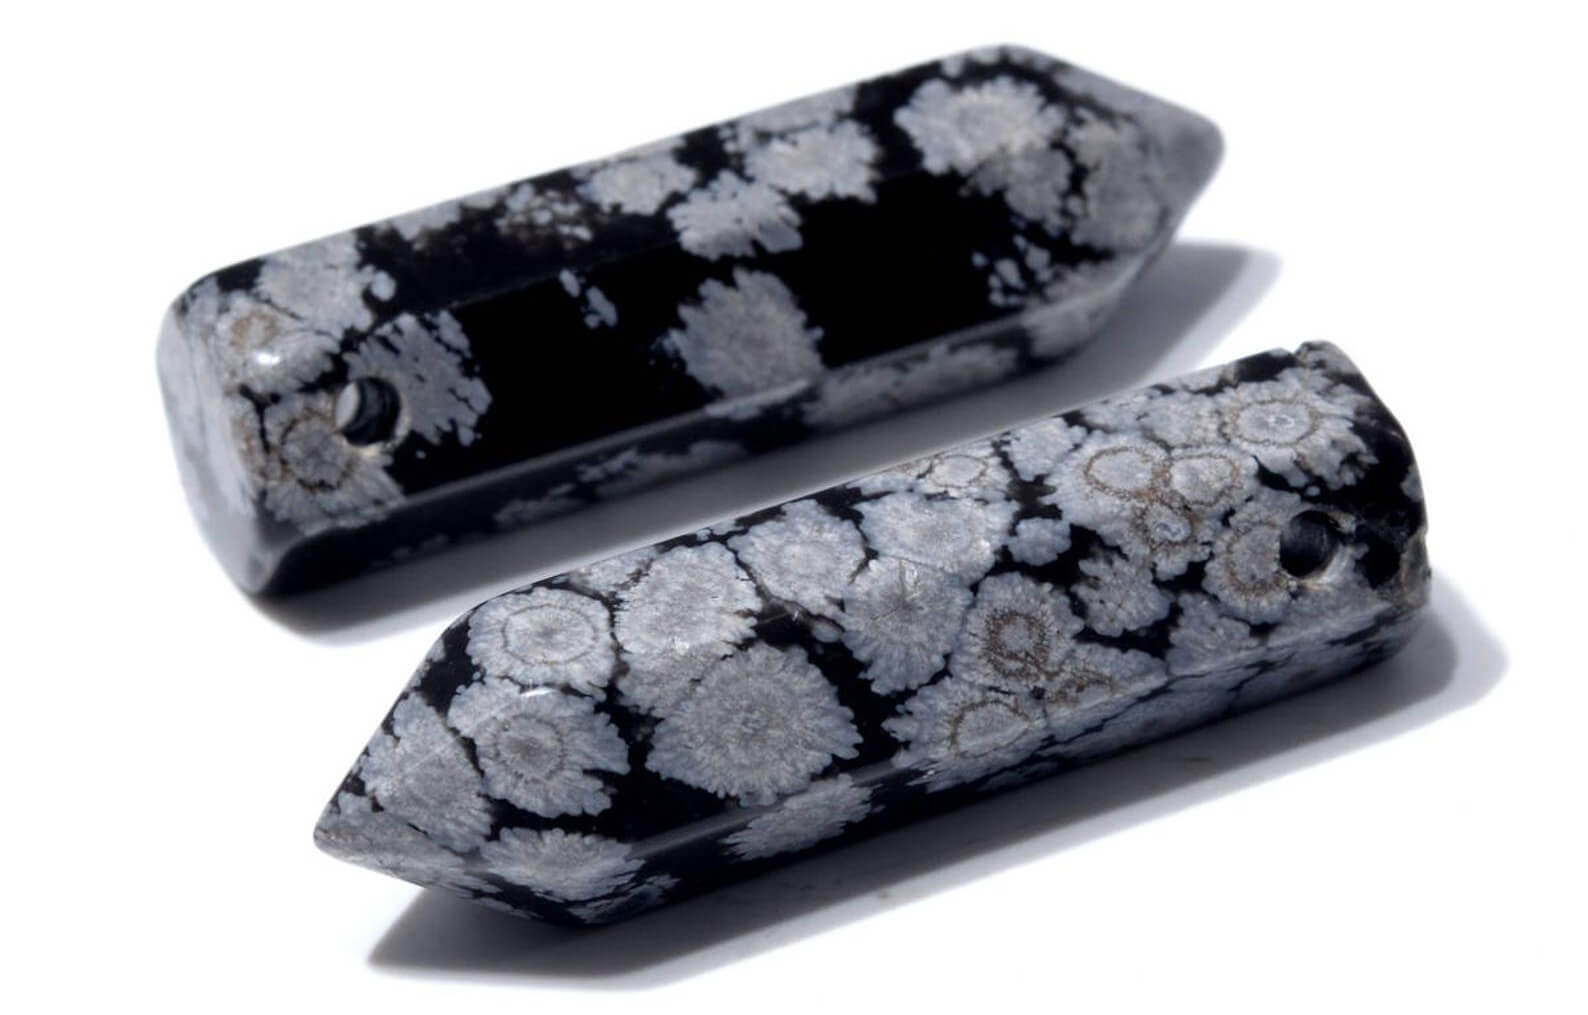 snowflake obsidian meaning